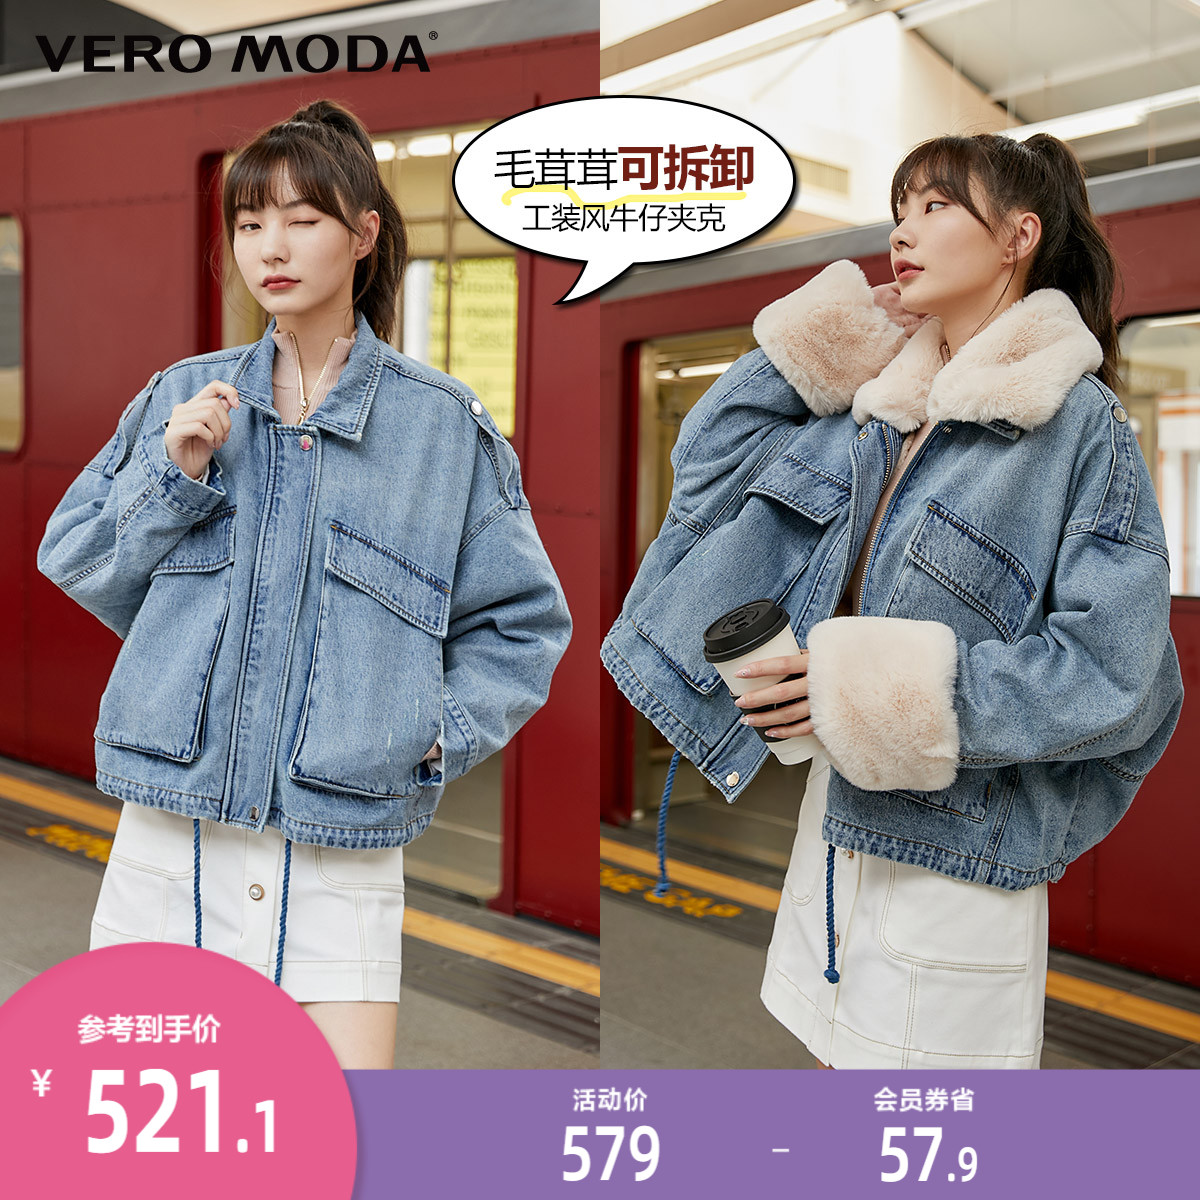 Wei Ya recommends the 2020 autumn and winter new fur collar detachable tooling hem drawstring denim jacket